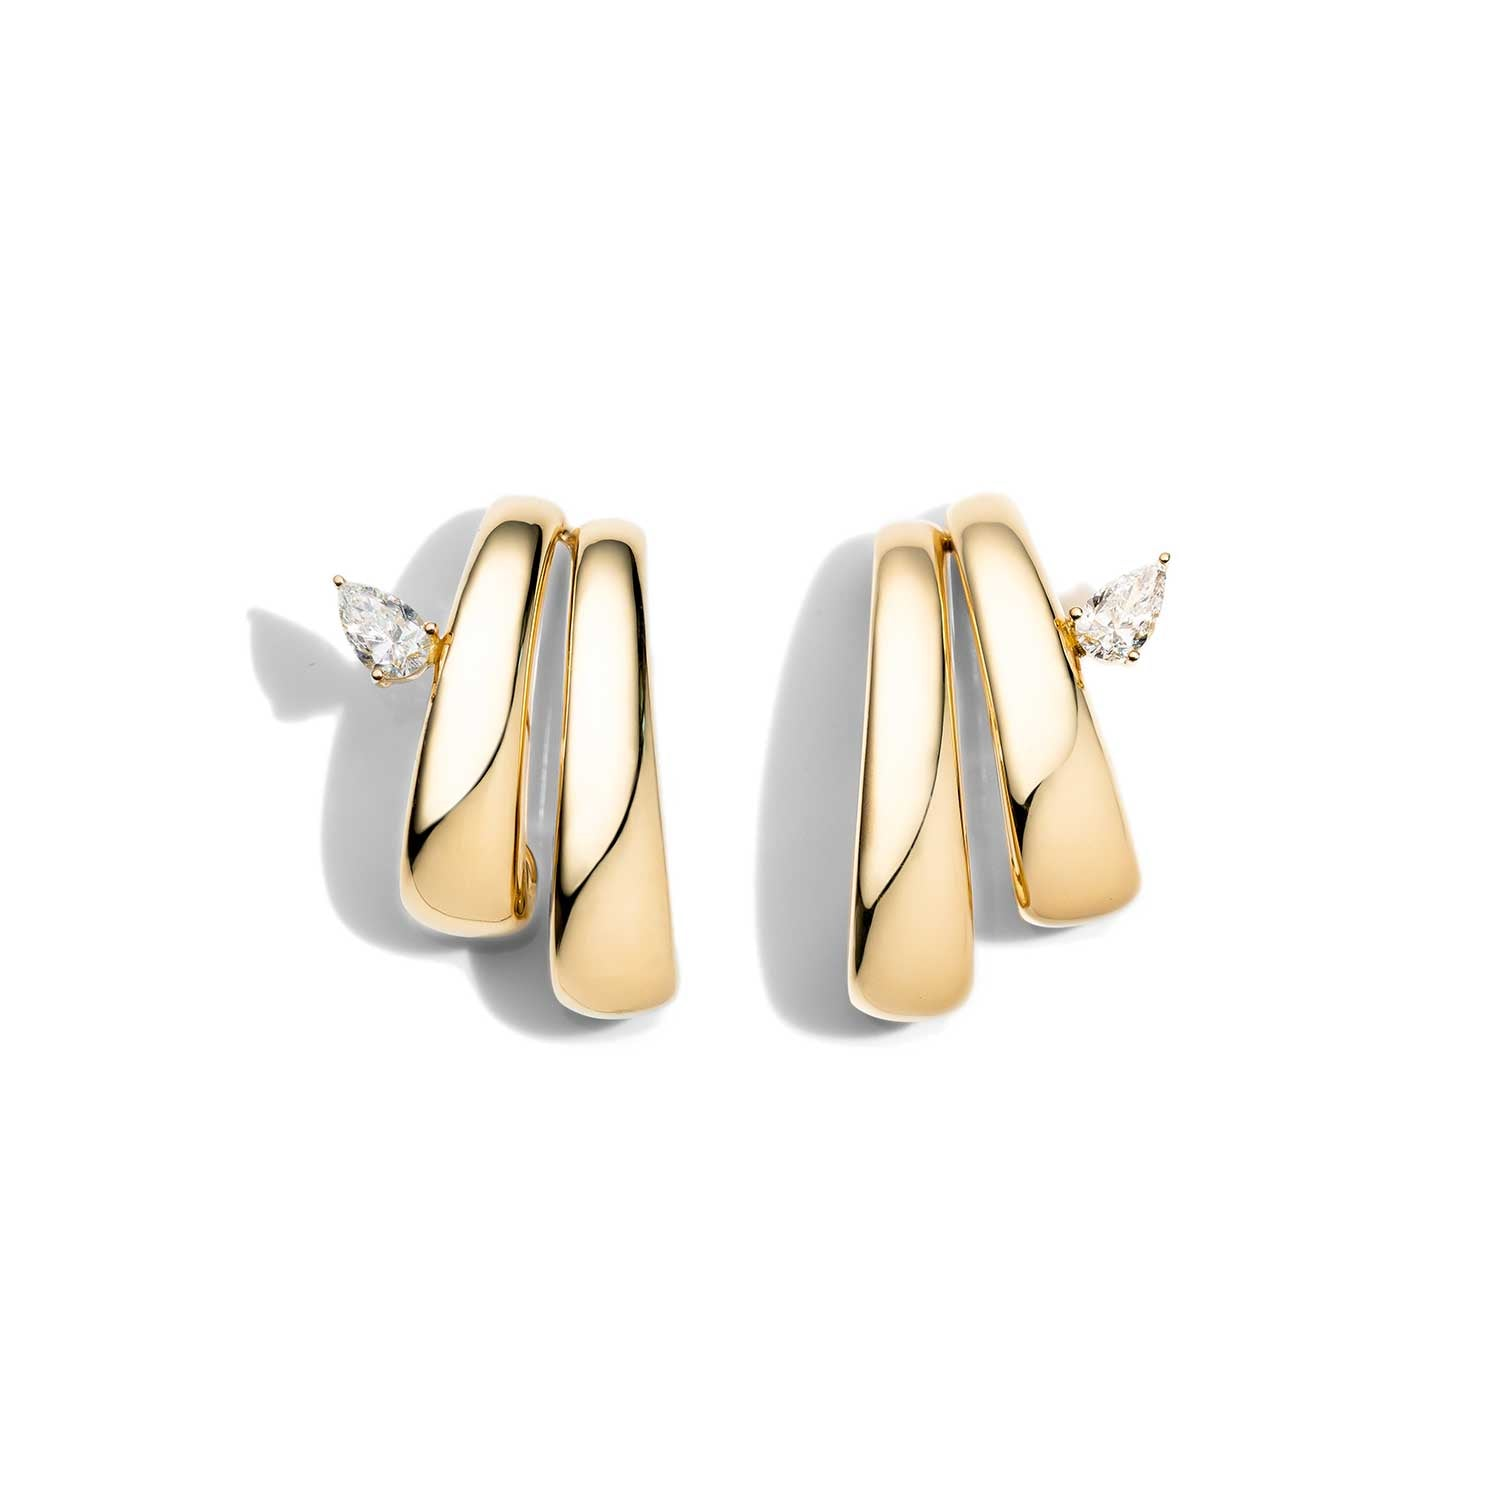 AS29 Bombee Earring in Yellow Gold